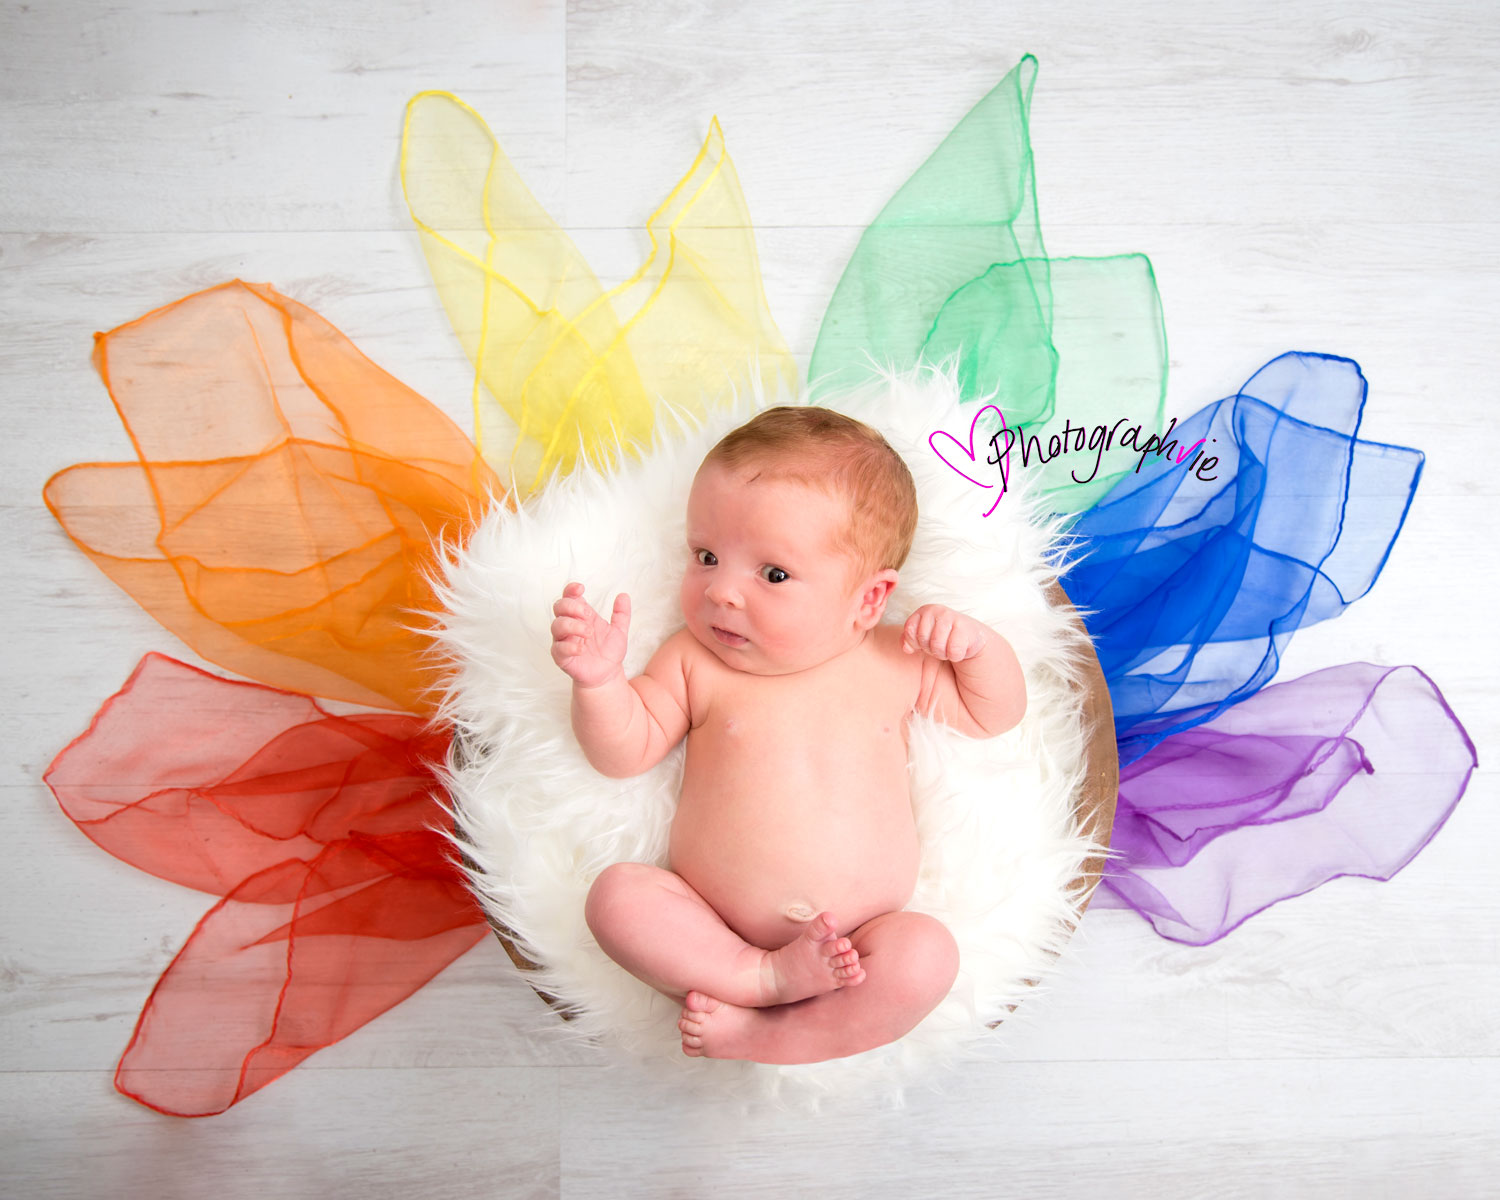 Newborn_Baby_photography_Ely_Cambridgeshire-Antiphospholipid syndrome-rainbow_baby-photo-of-new-baby-surrounded-by-a-rainbow-of-colours.jpg